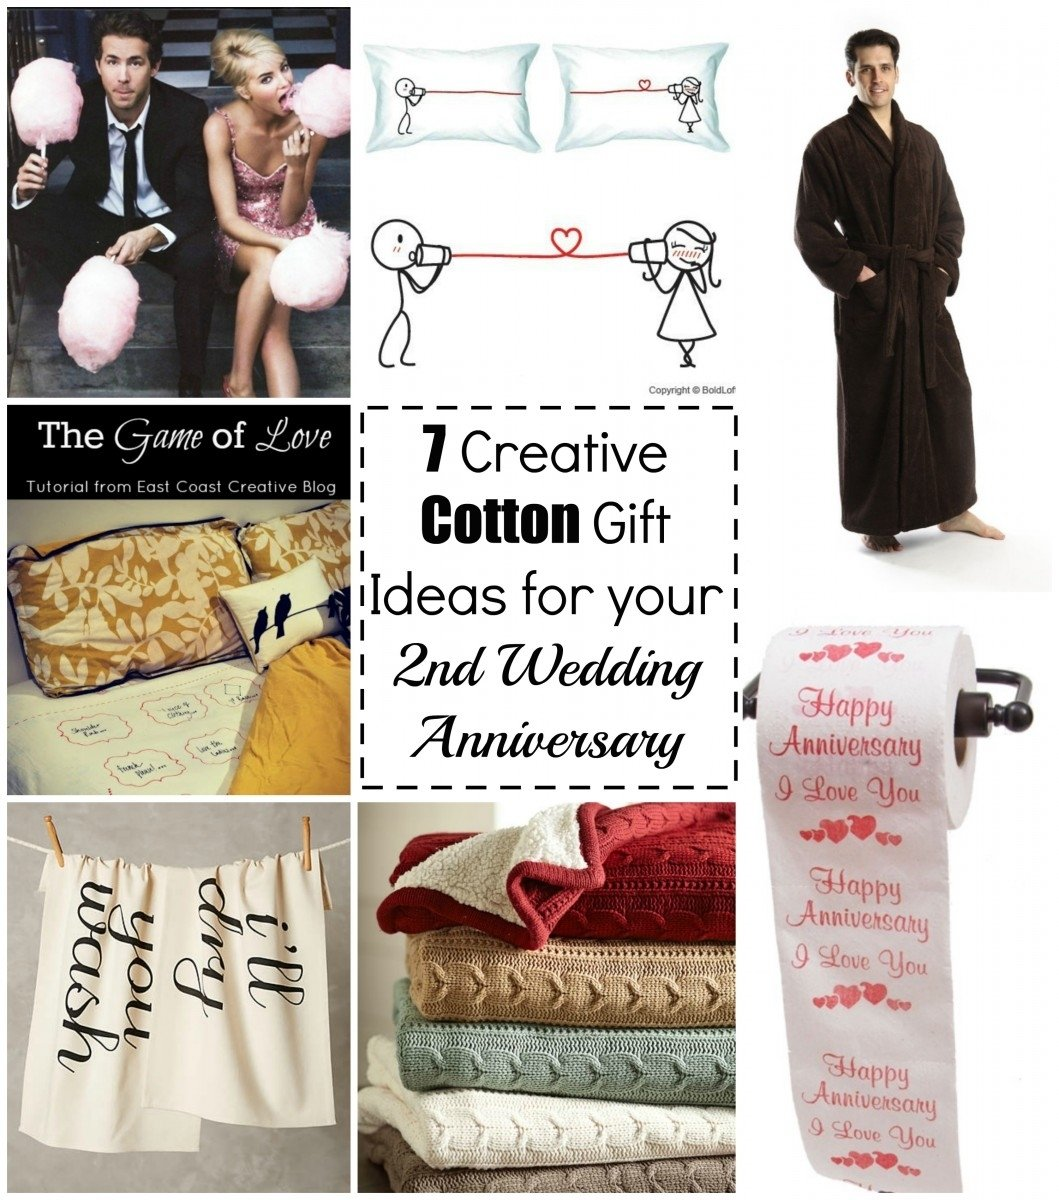 10 Attractive Second Wedding Anniversary Gift Ideas For Her good 2nd wedding anniversary gifts for her b20 on images selection 1 2021